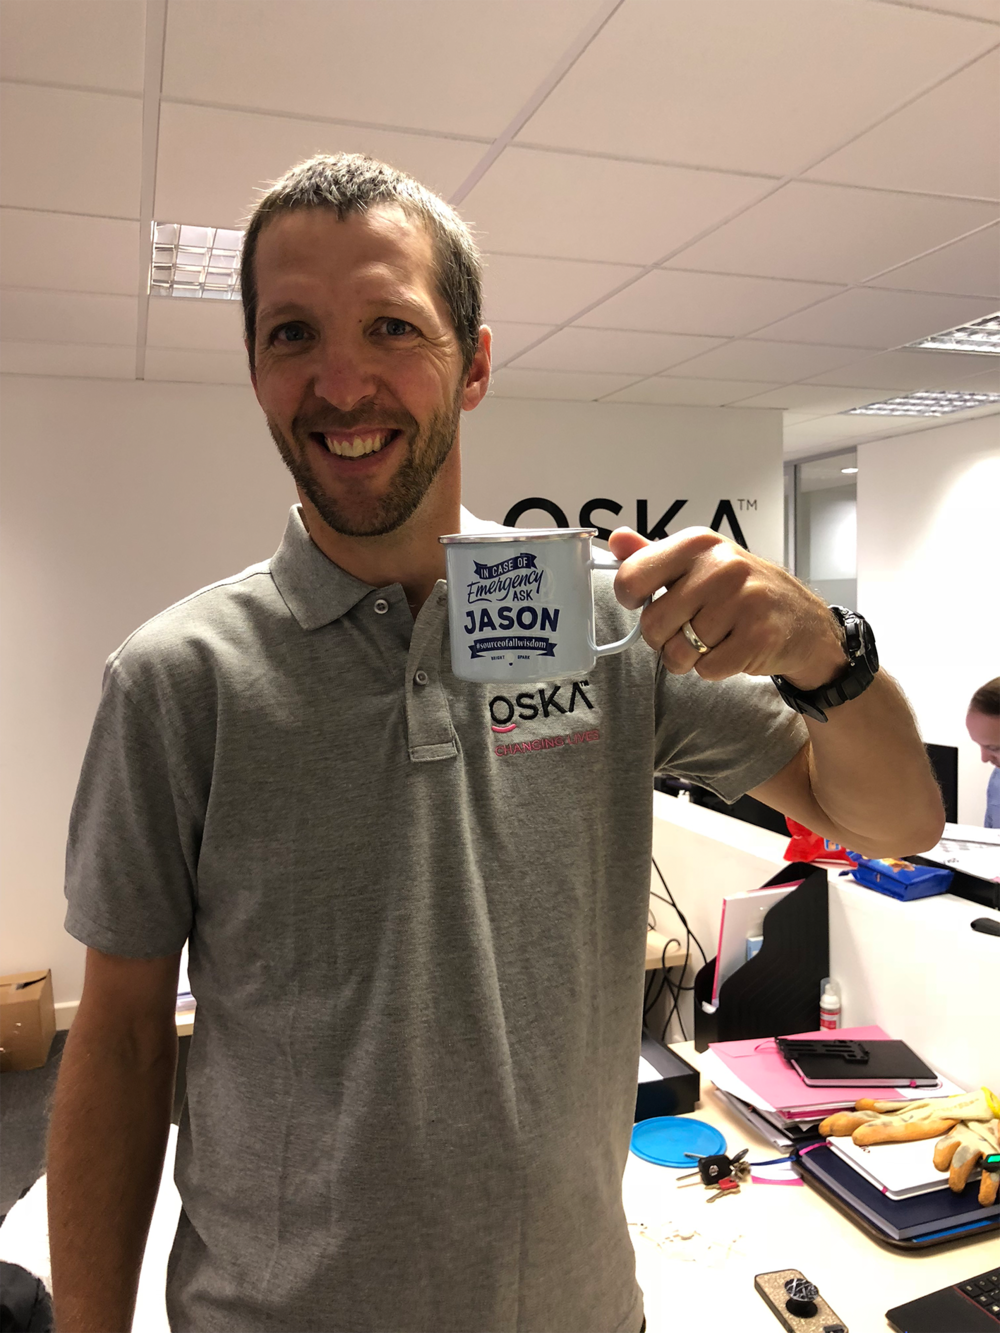 Jason kicks off the morning with a cup of coffee!